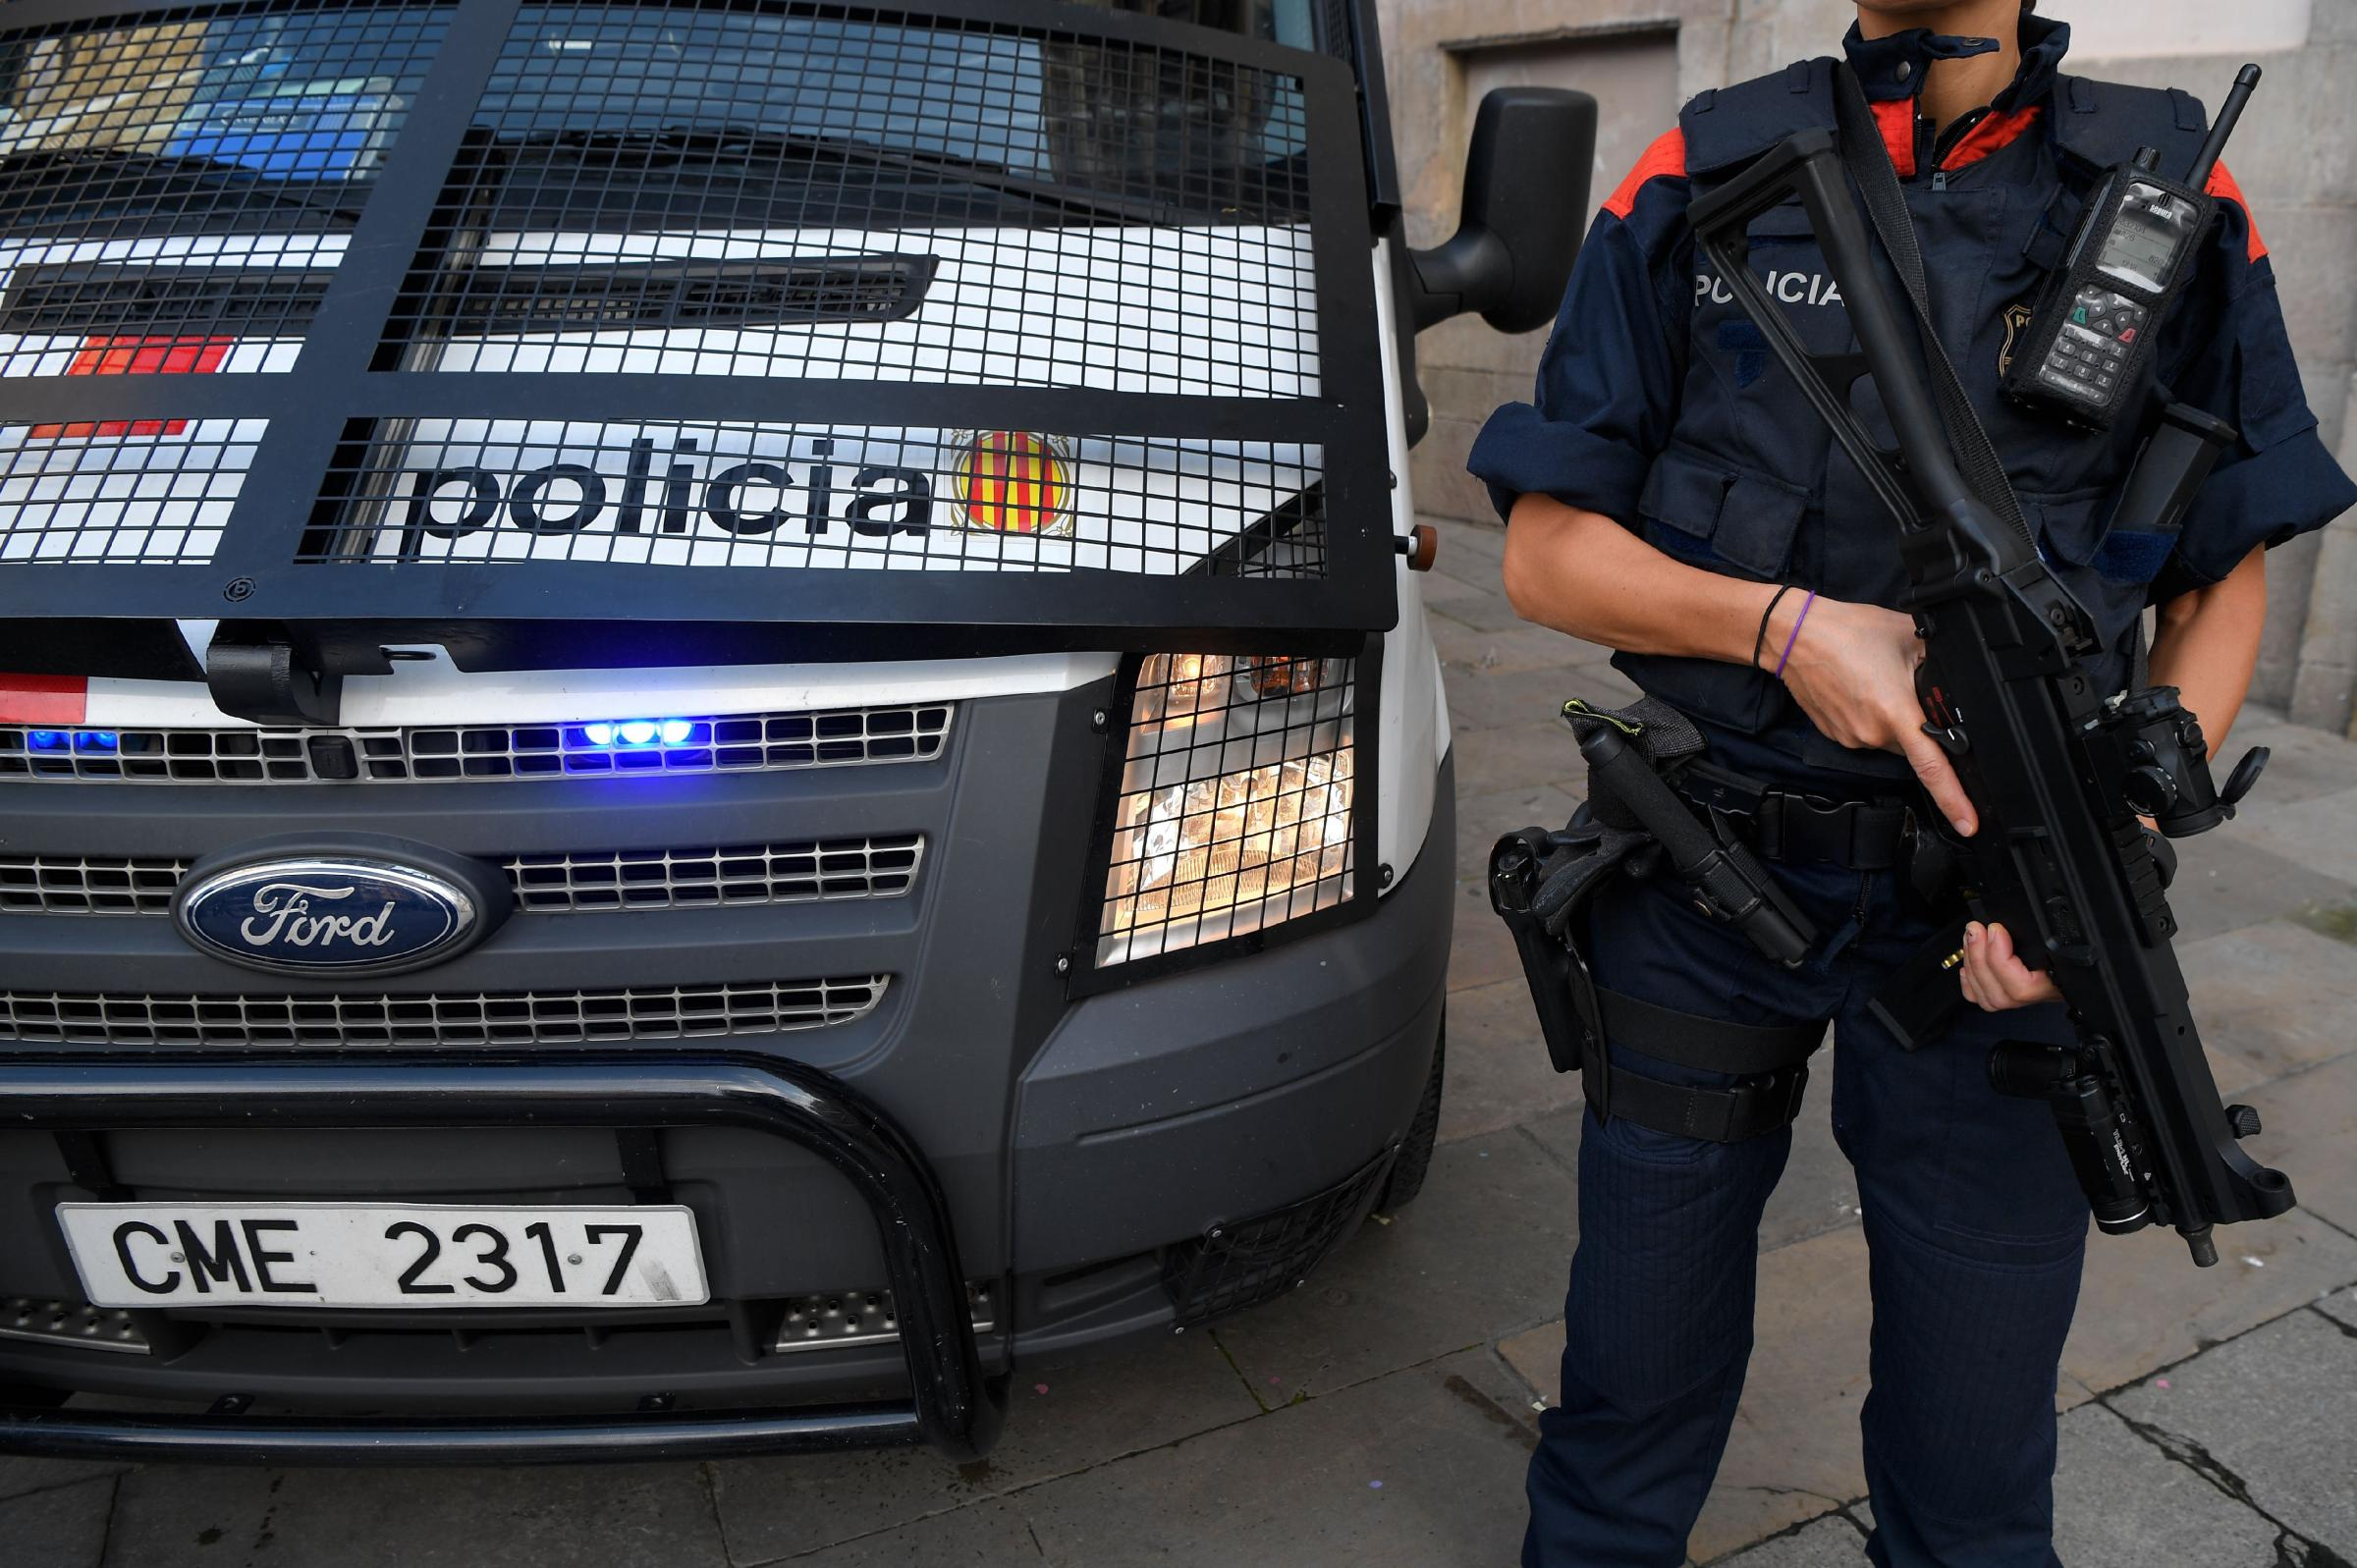 Spanish civil guard tell court of raids on Catalan government offices